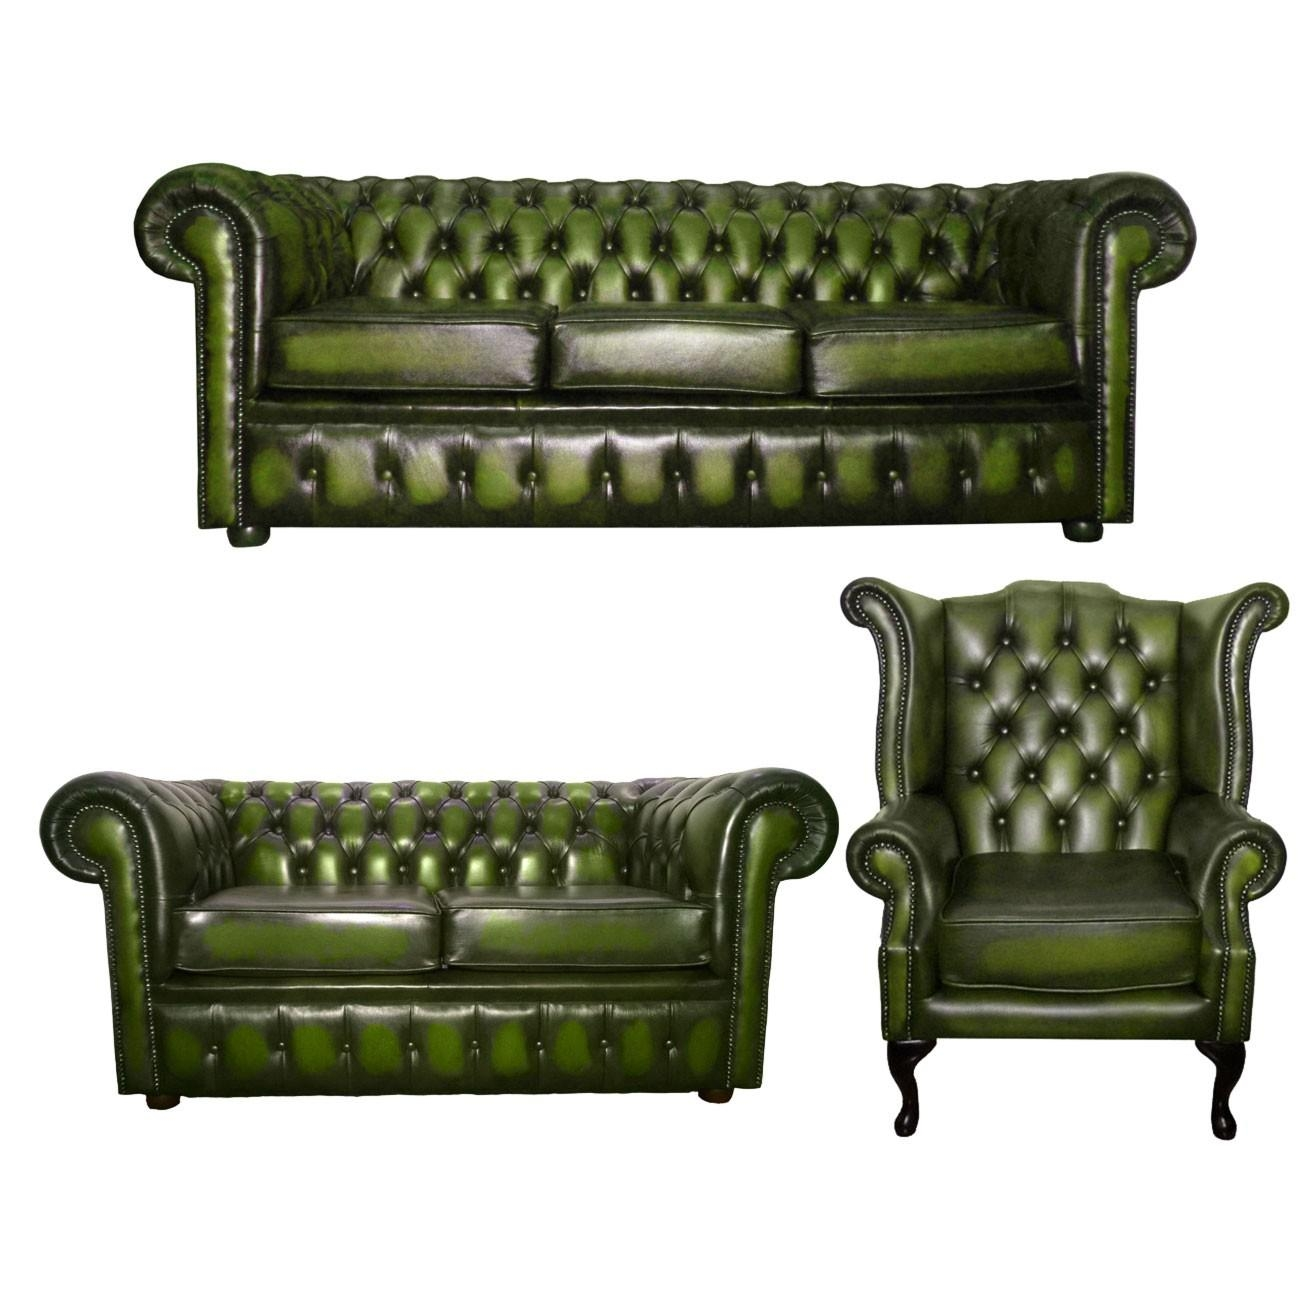 Green Leather Chesterfield Sofa | Sofa Gallery | Kengire With Regard To Chesterfield Sofas And Chairs (View 9 of 20)